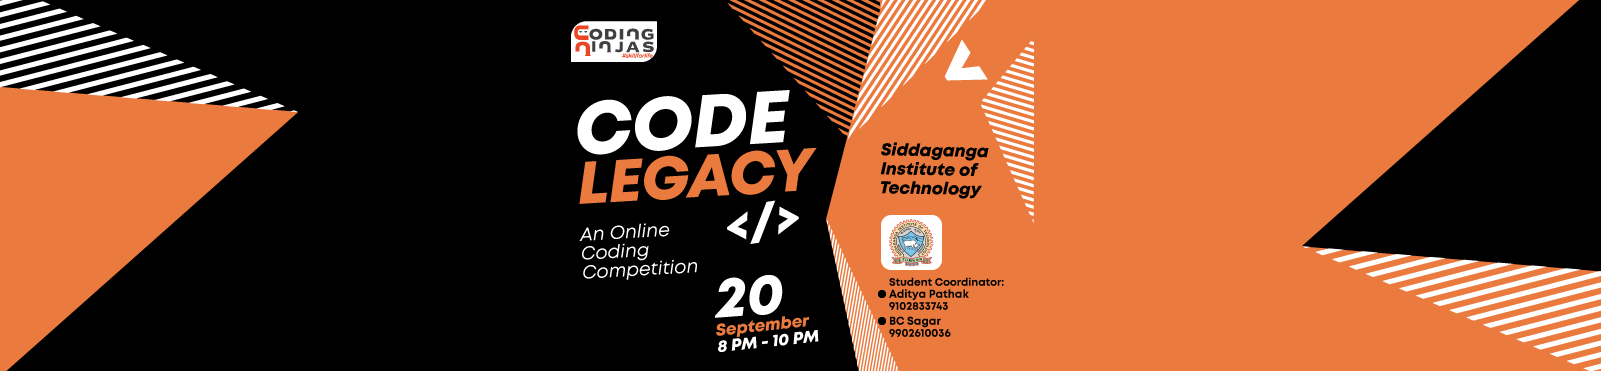 "Code Legacy at ""Siddaganga Institute of Technology"""